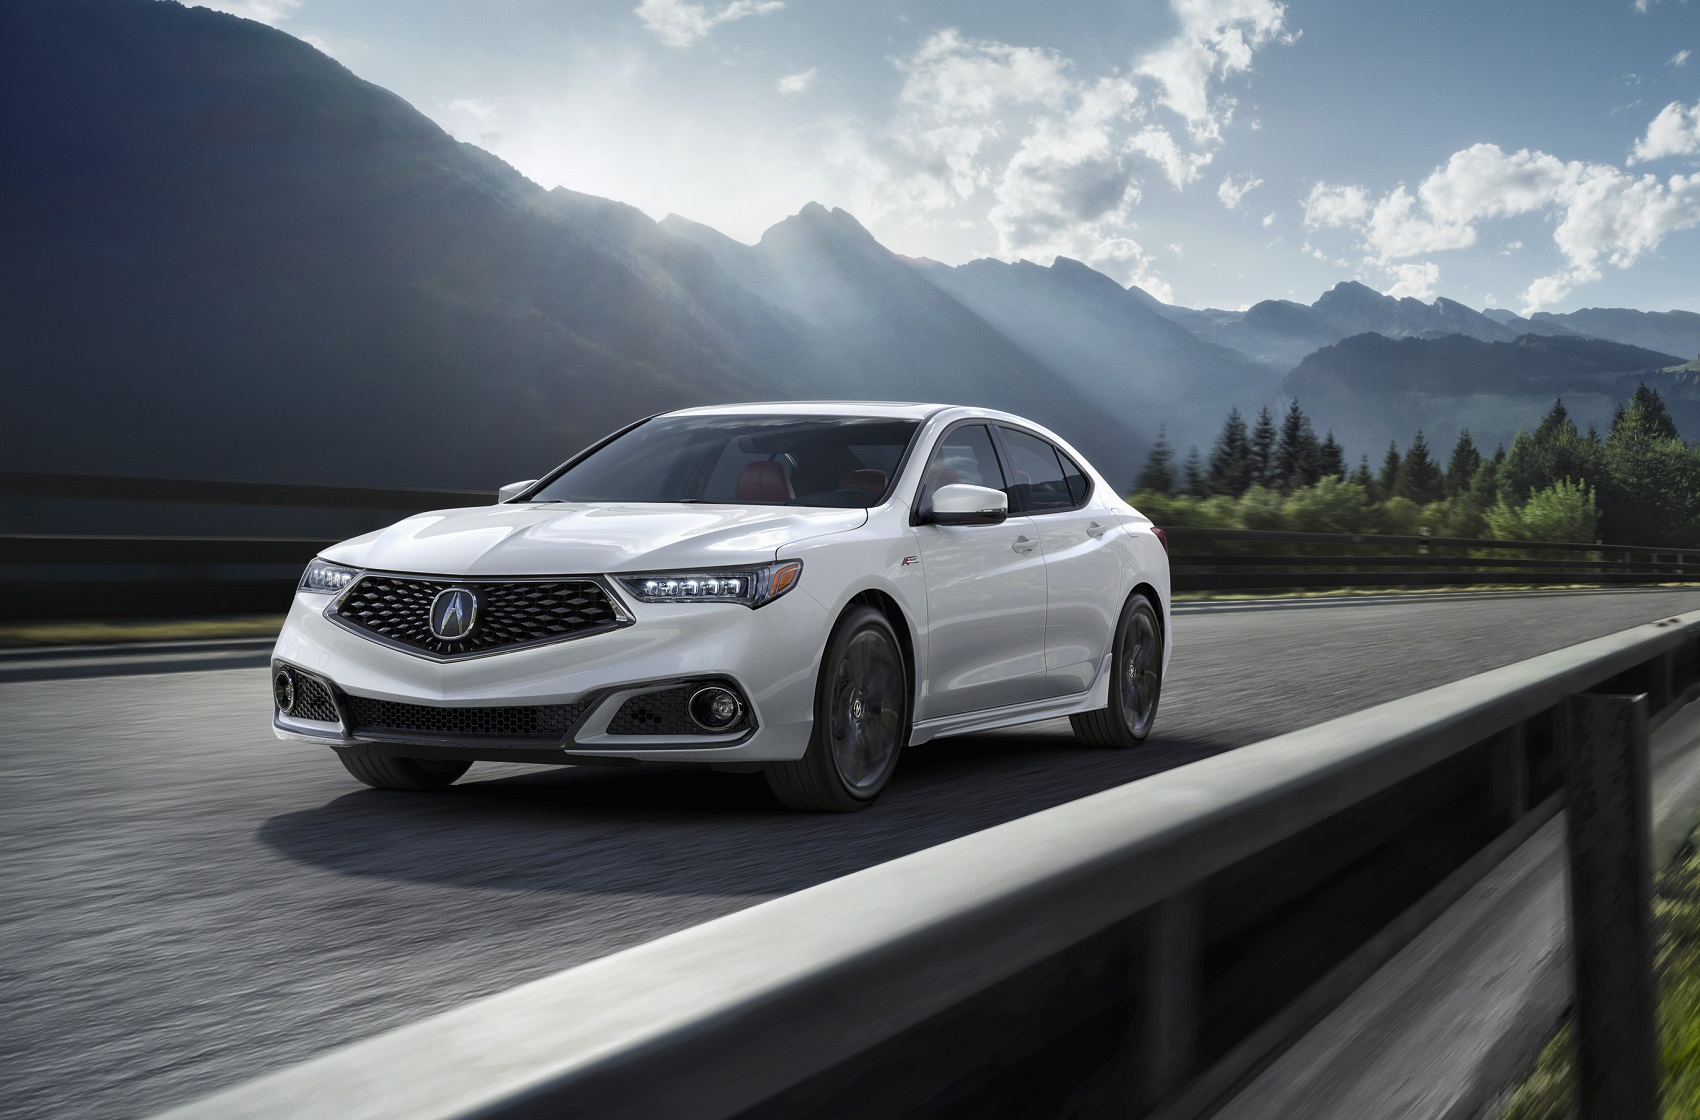 2020 Acura TLX Features